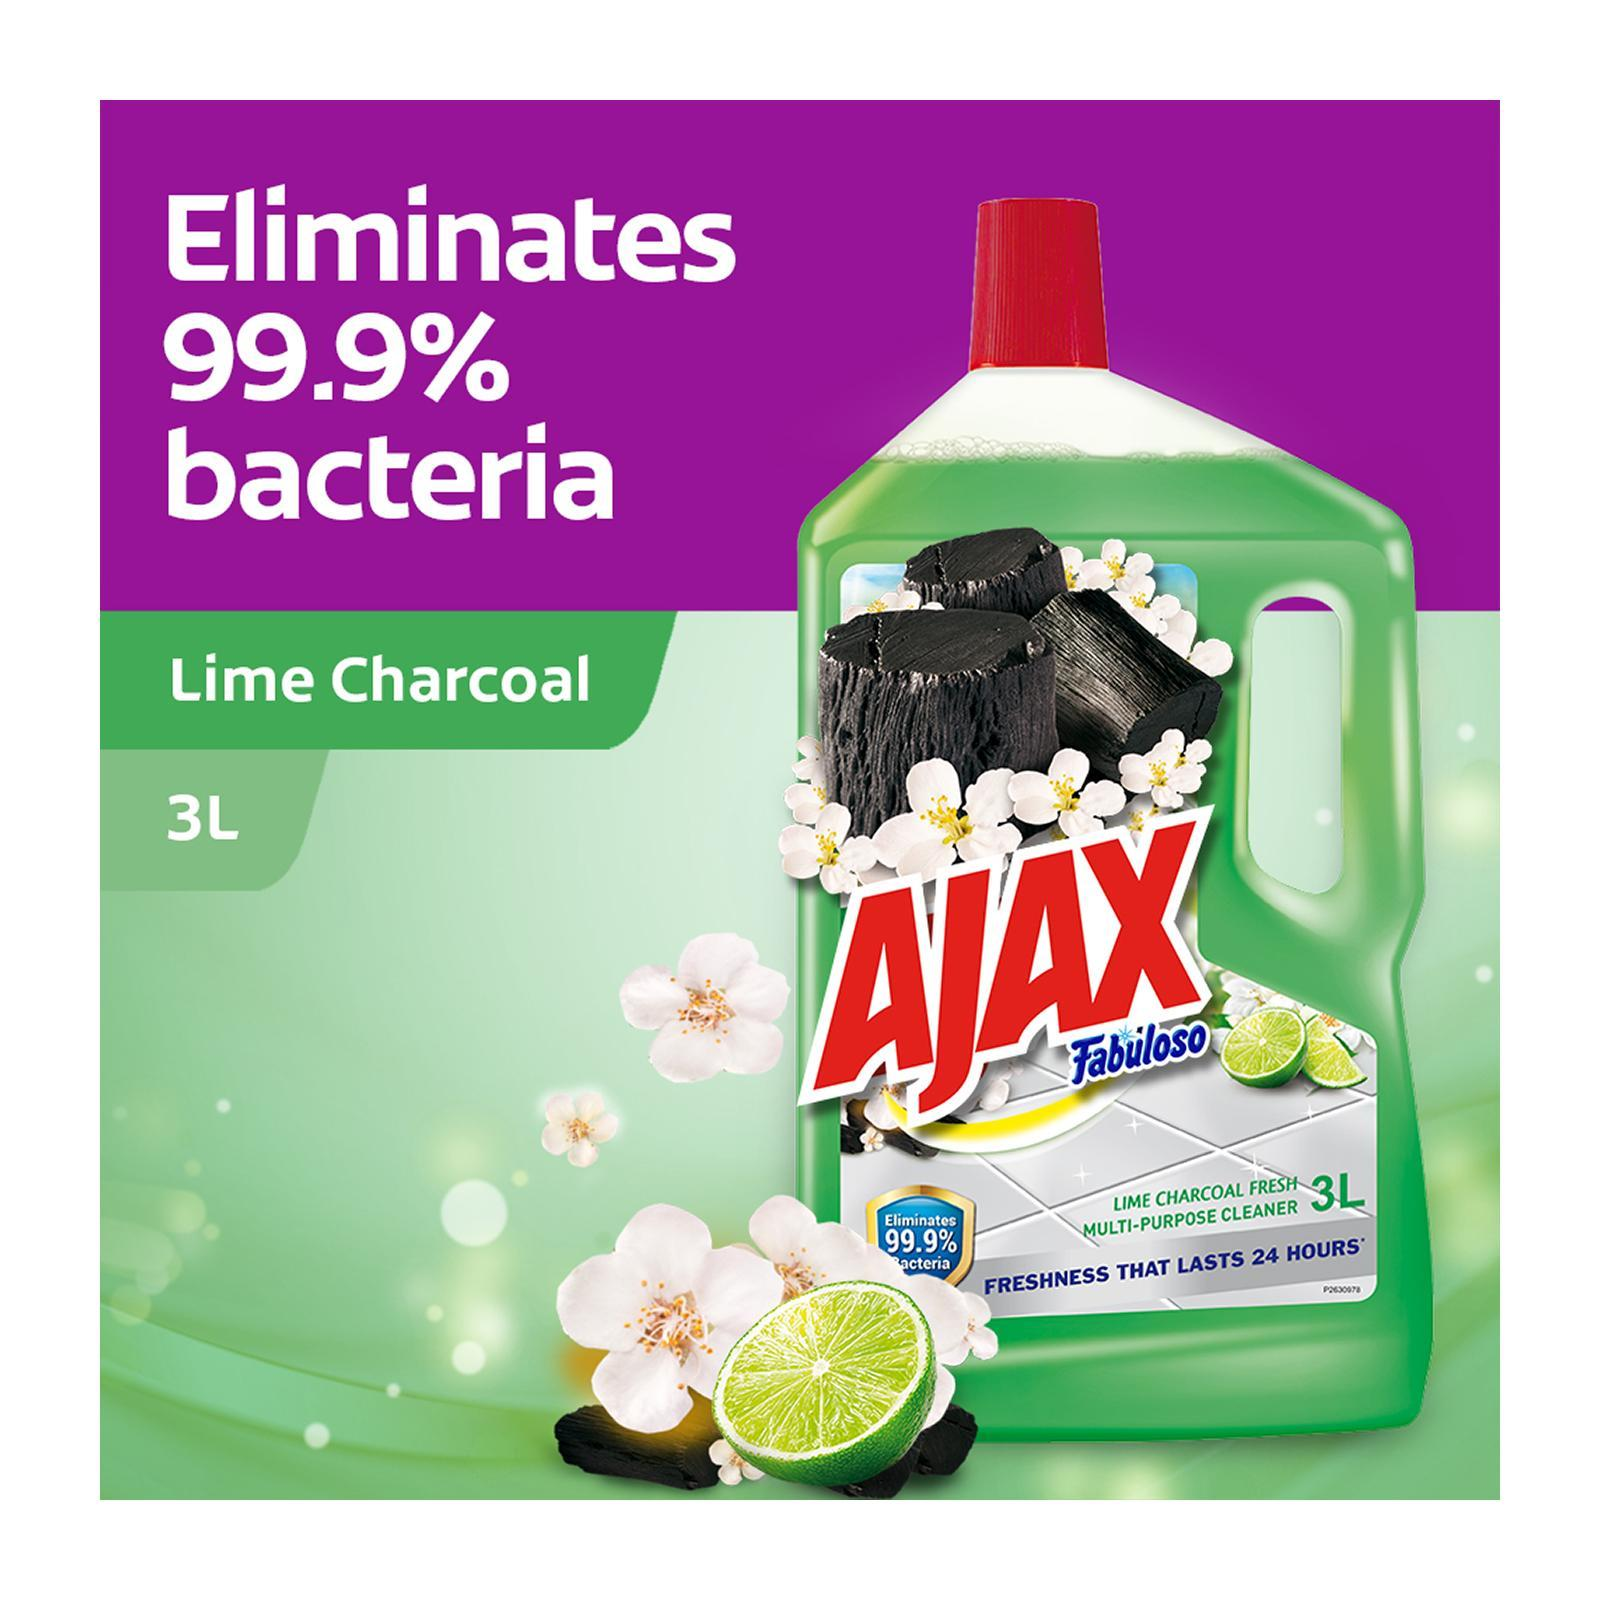 Ajax Fabuloso Lime Charcoal Antibacterial Multi Purpose Floor Cleaner 3L